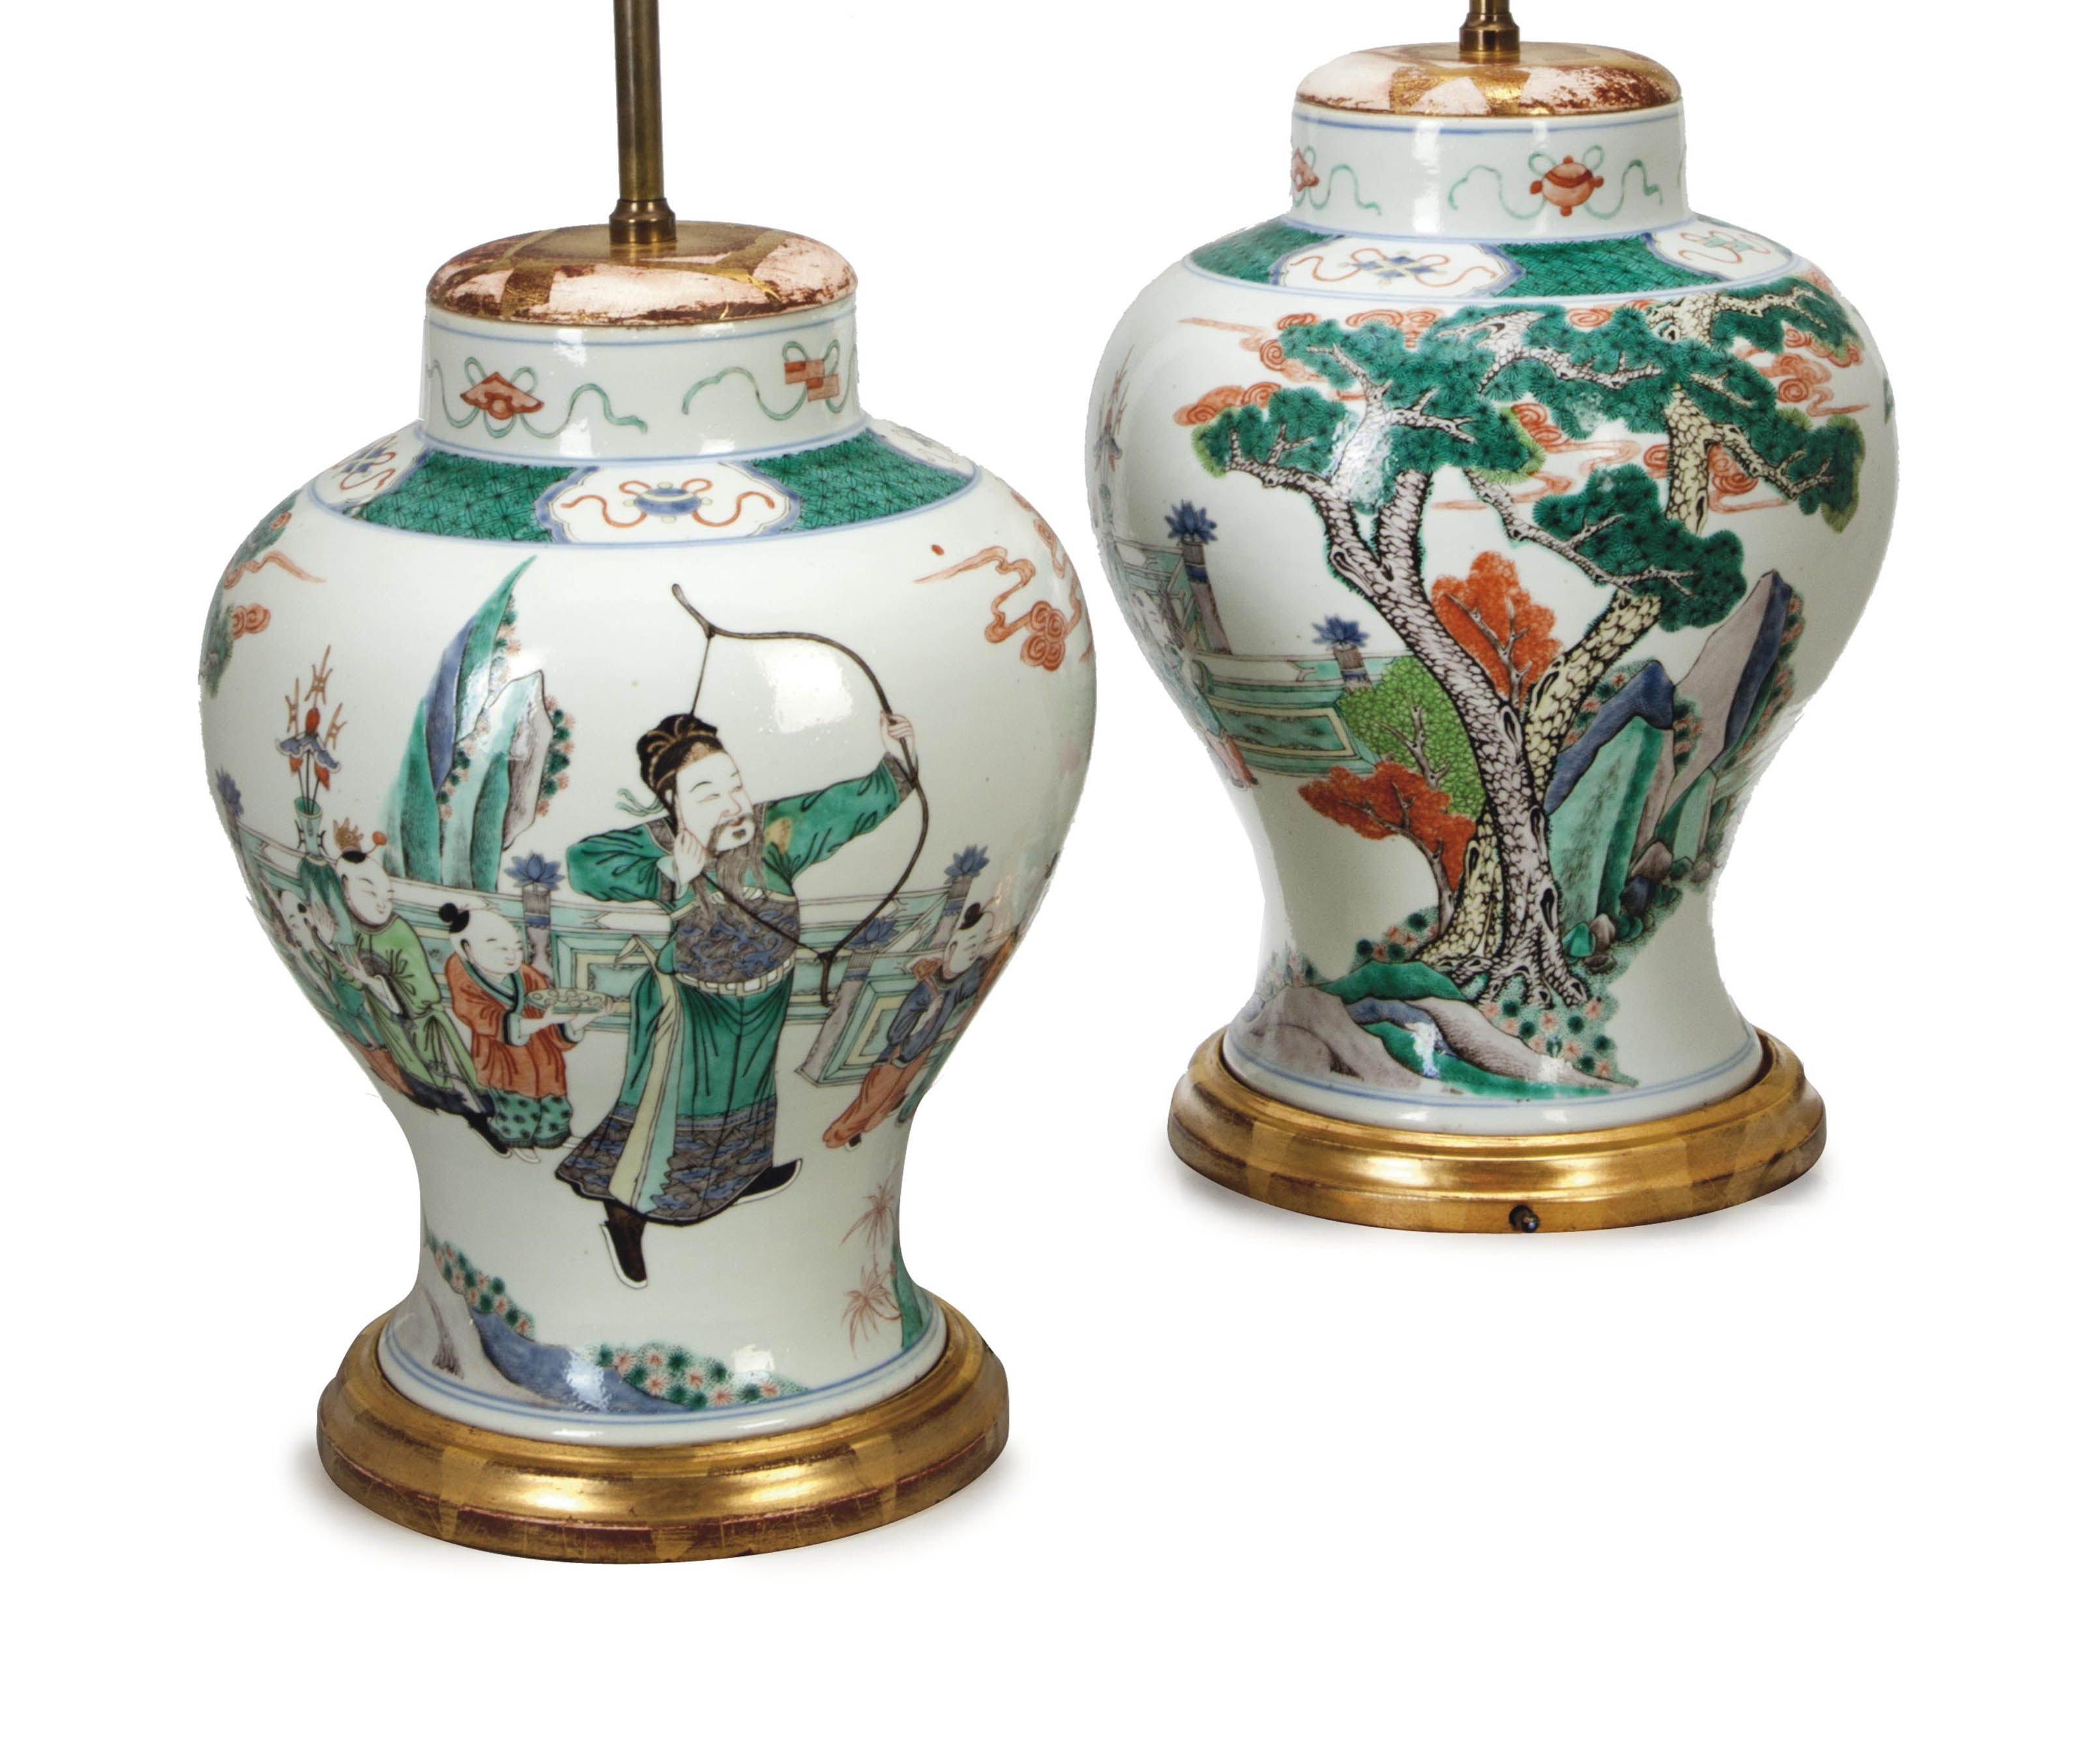 A PAIR OF CHINESE FAMILLE VERTE JARS MOUNTED AS LAMPS,